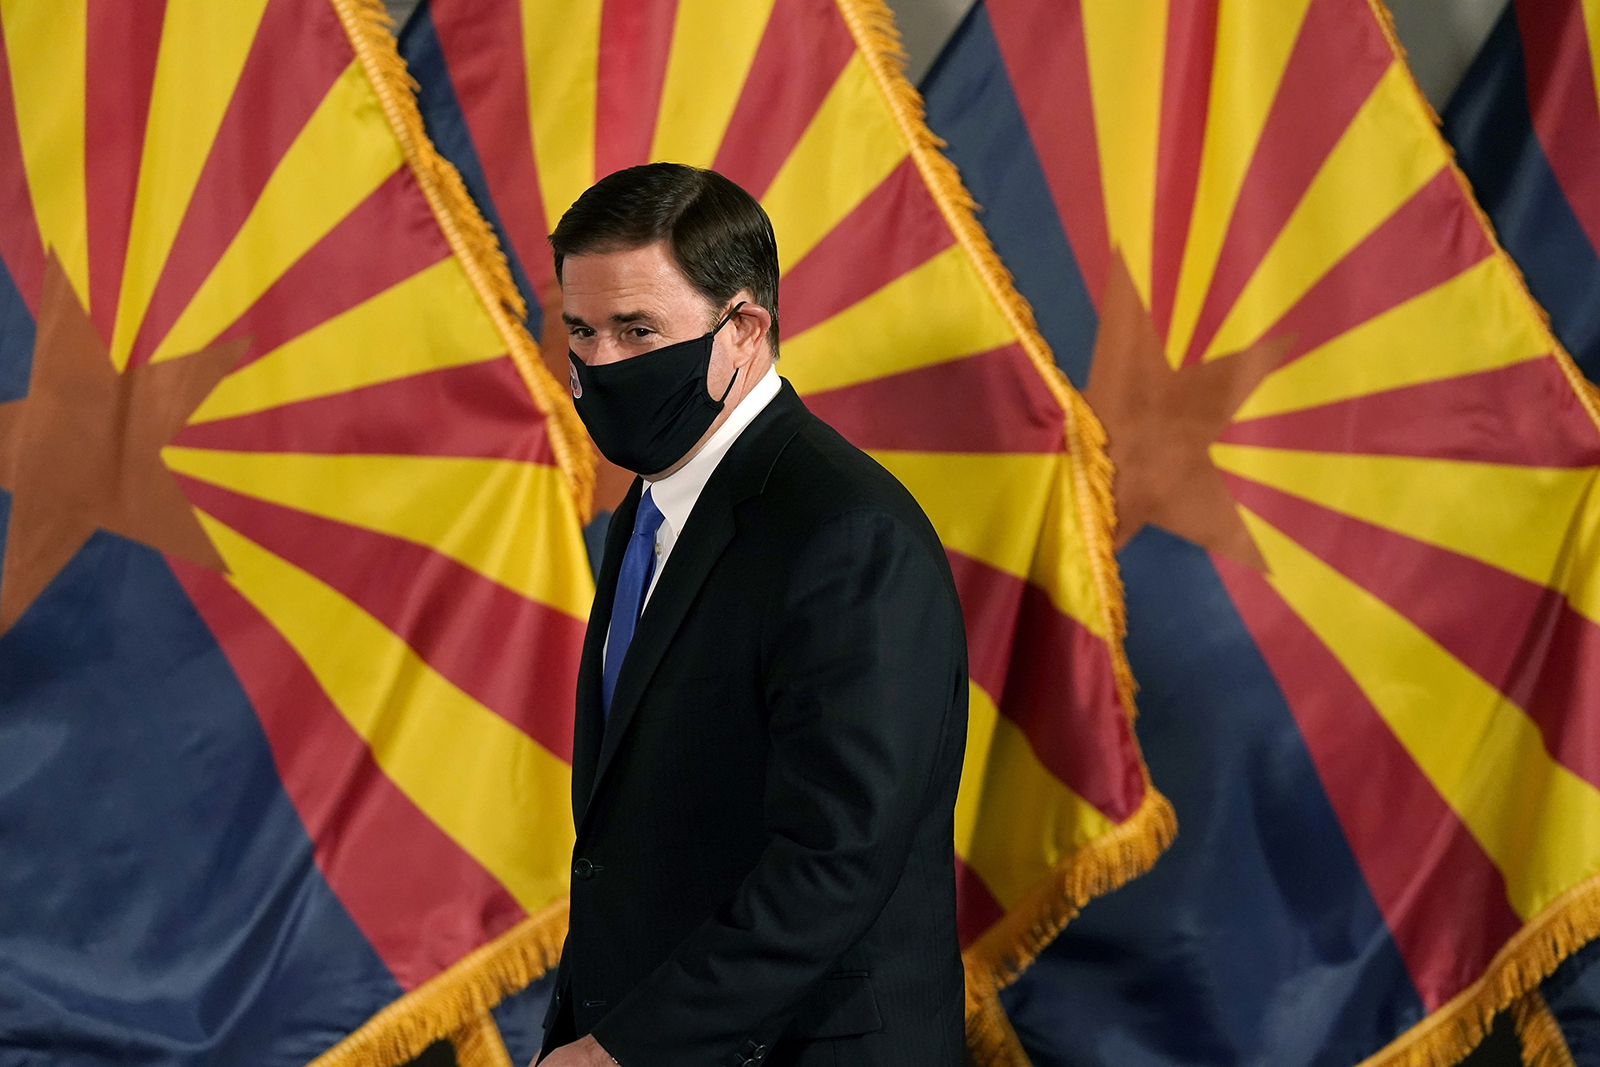 Arizona Republican Gov. Doug Ducey arrives for a news conference to talk about the latest Arizona V-19 information Wednesday, Dec. 2, 2020, in Phoenix. (AP Photo/Ross D. Franklin, Pool)